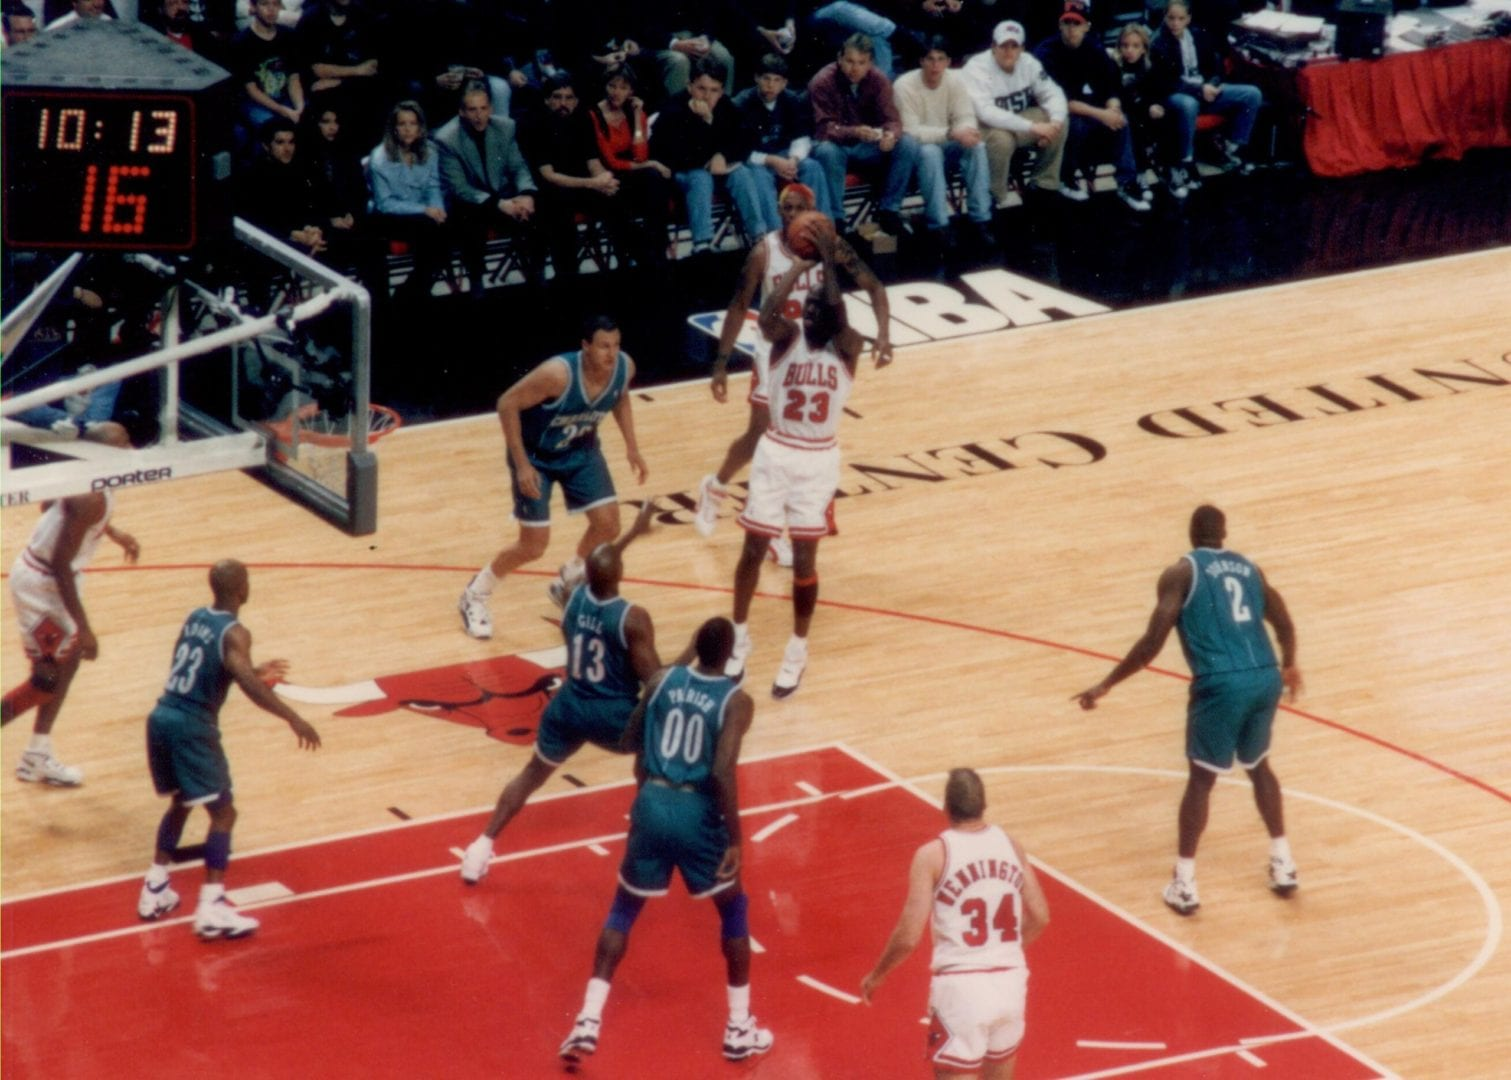 A jump shot made by MJ